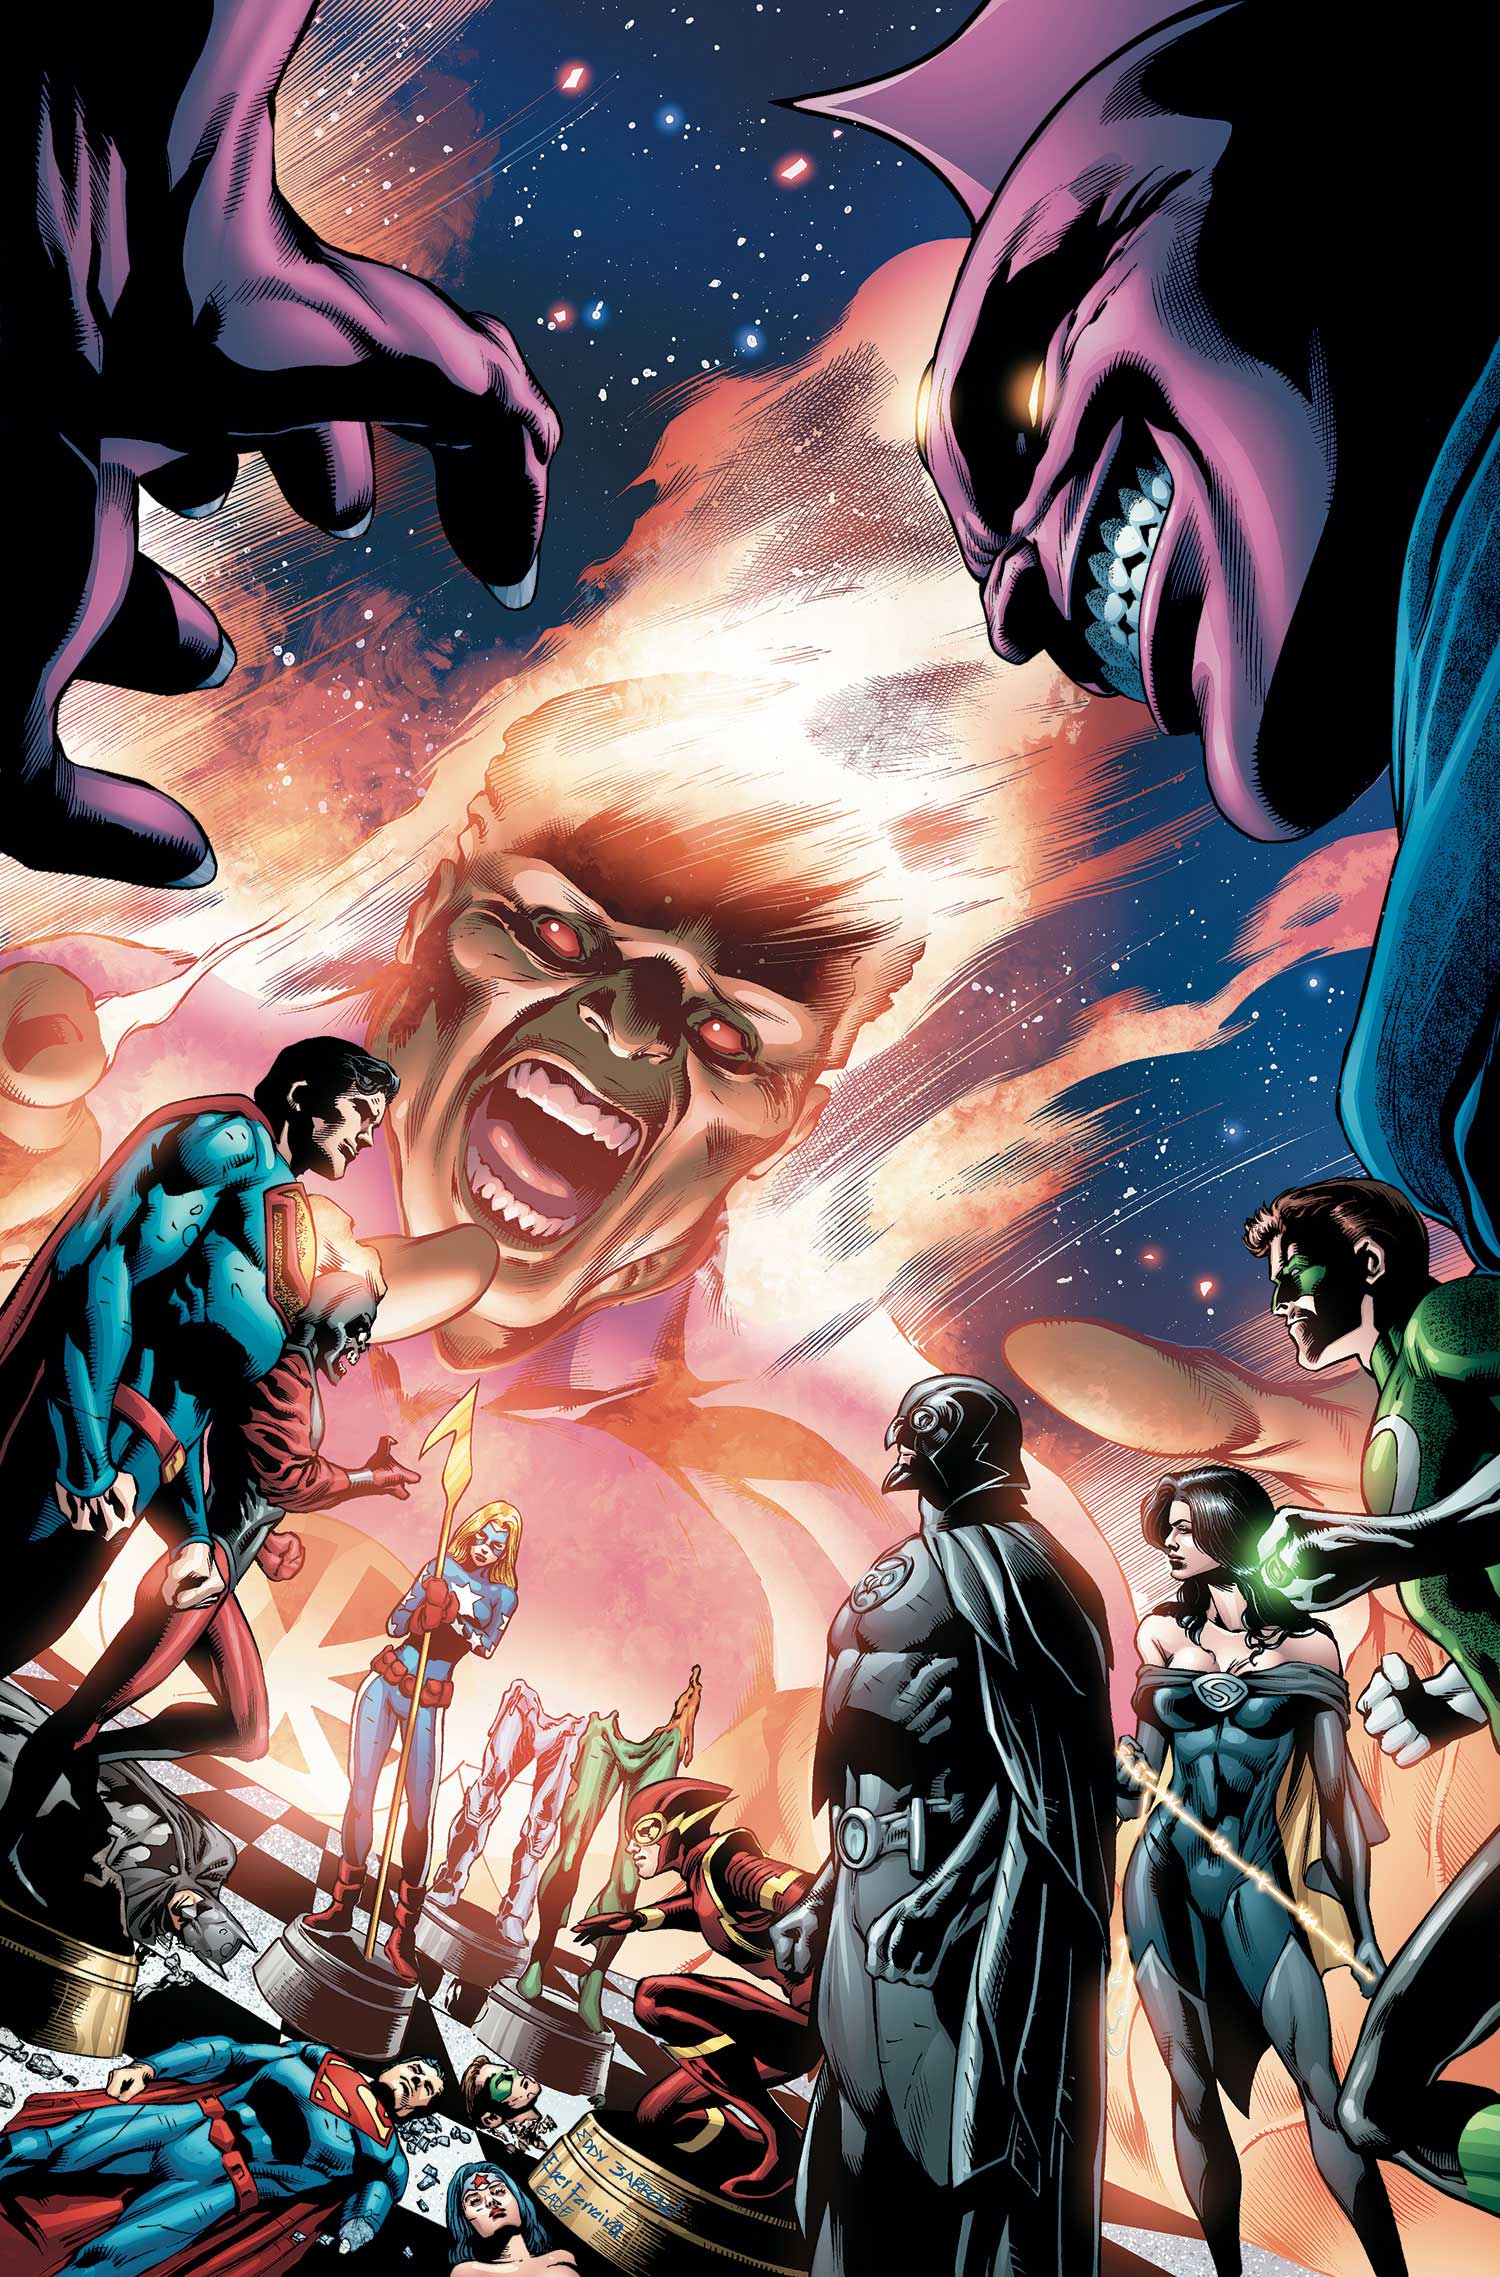 Justice League of America #12 cover by Eddy Barrows and Eber Ferreira